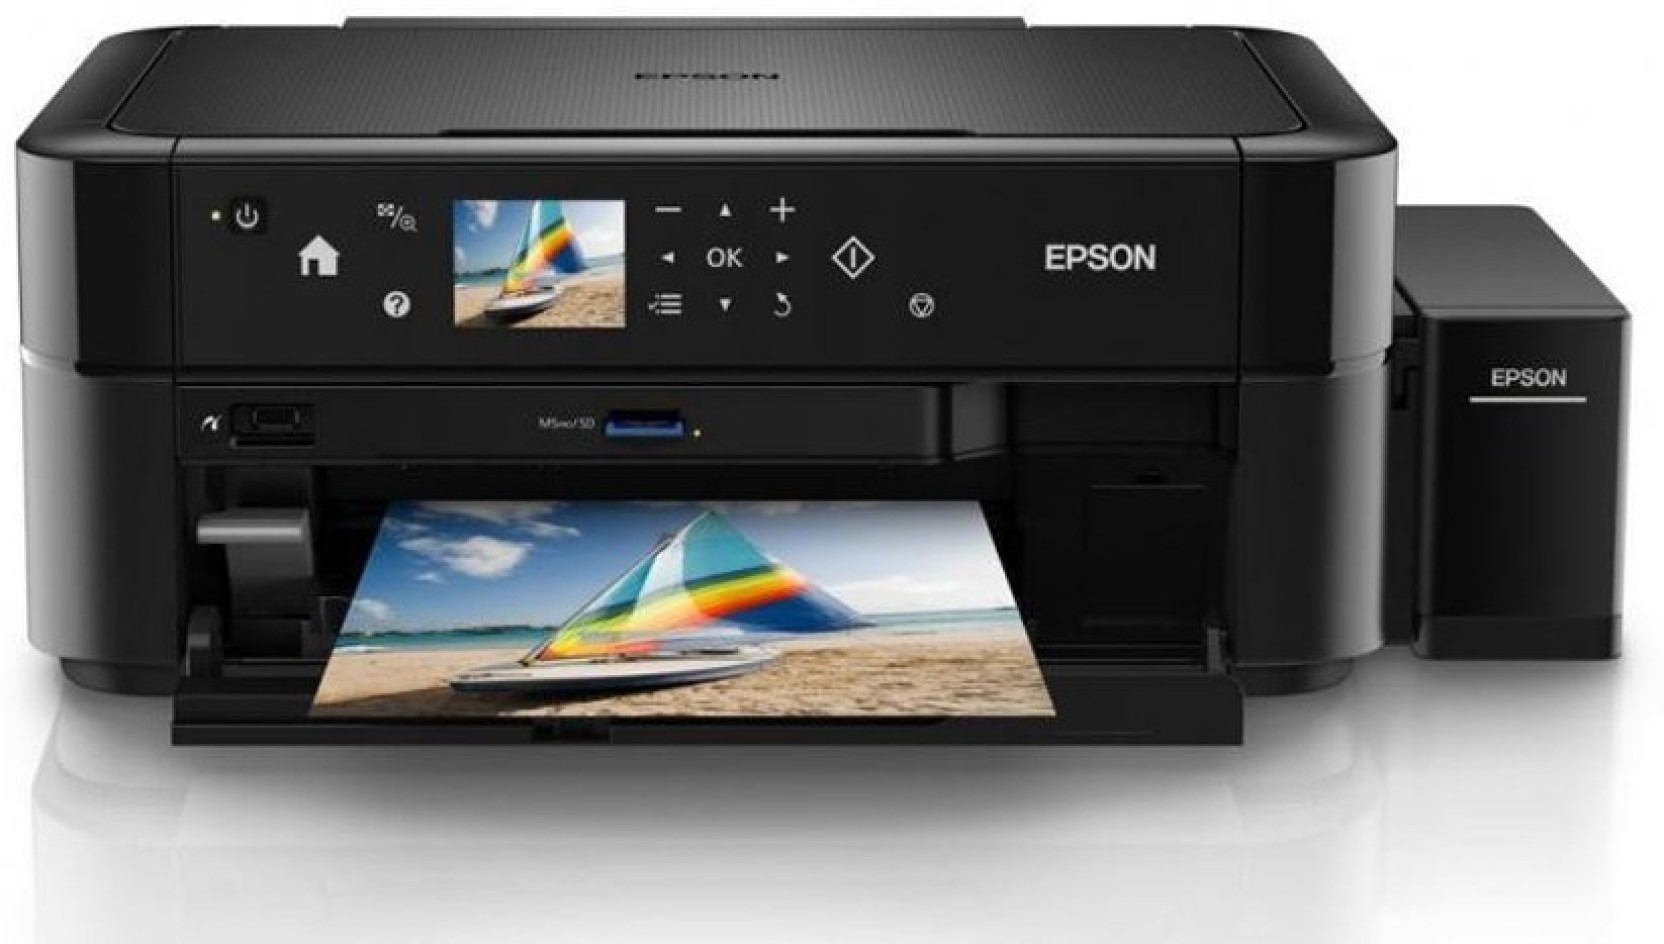 Epson L850 Photo All In One Ink Tank Printer Multi Function Main Board L805 Wifi Compare